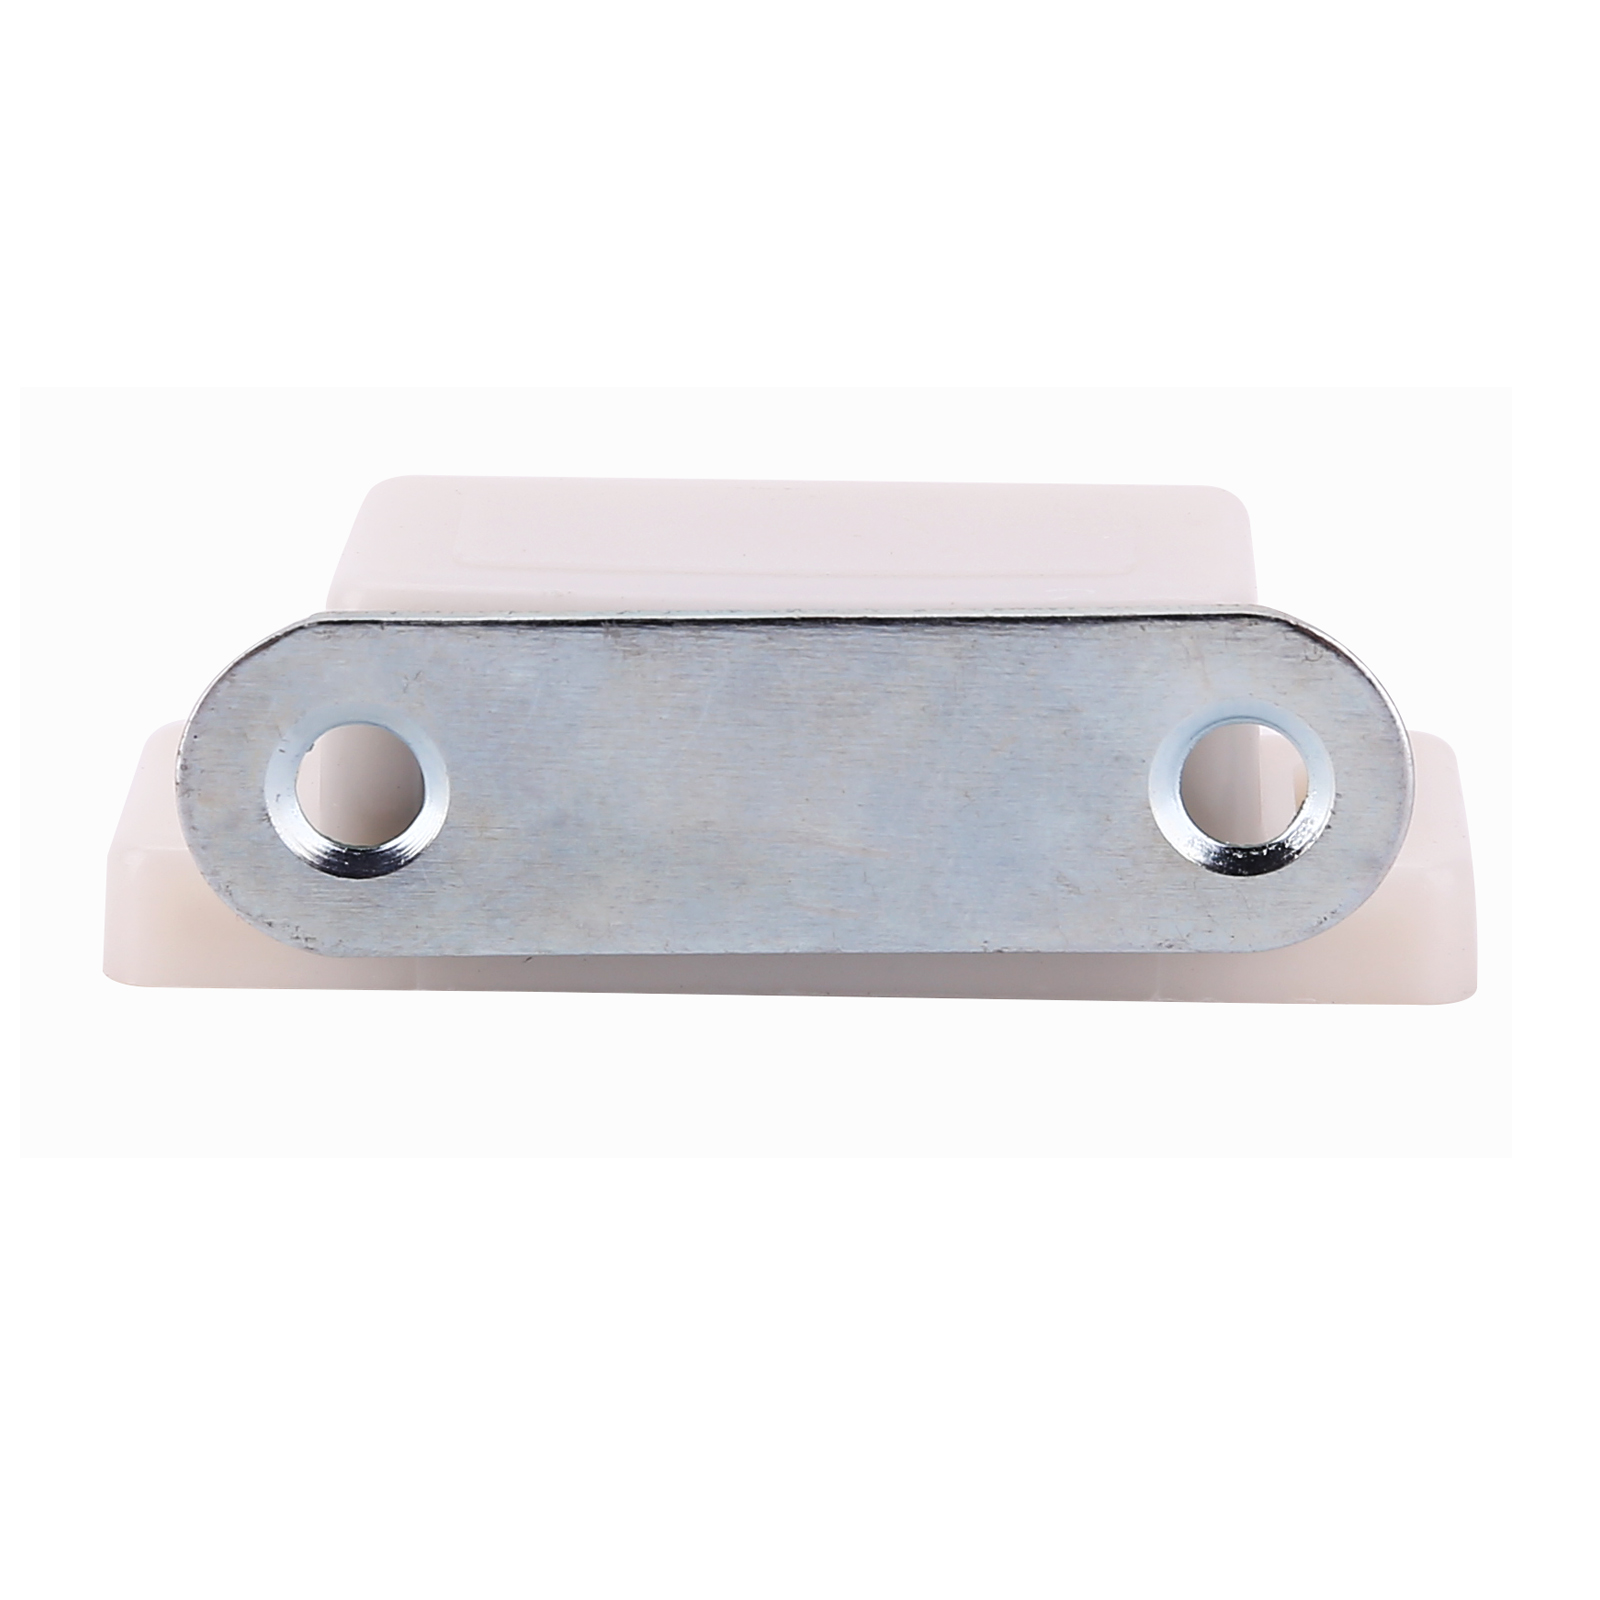 10x Magnetic Door Catches For Kitchen Cabinet Cupboard ...